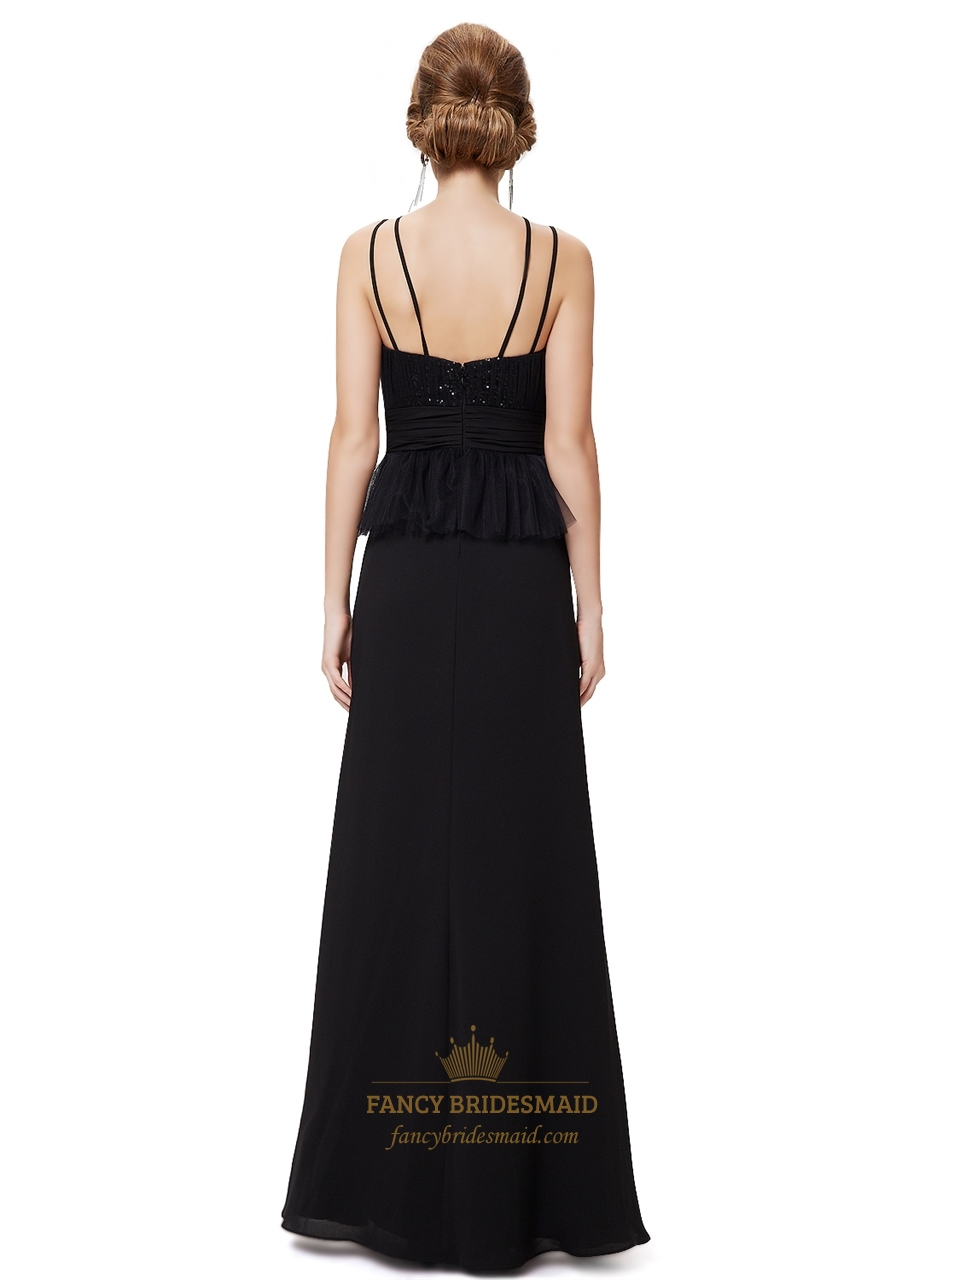 Shop evening gowns and long formal dresses at BCBG. Browse a variety of beautiful gowns that can be worn to any formal occasion. Steal the show in BCBG's evening gowns! BCBG.